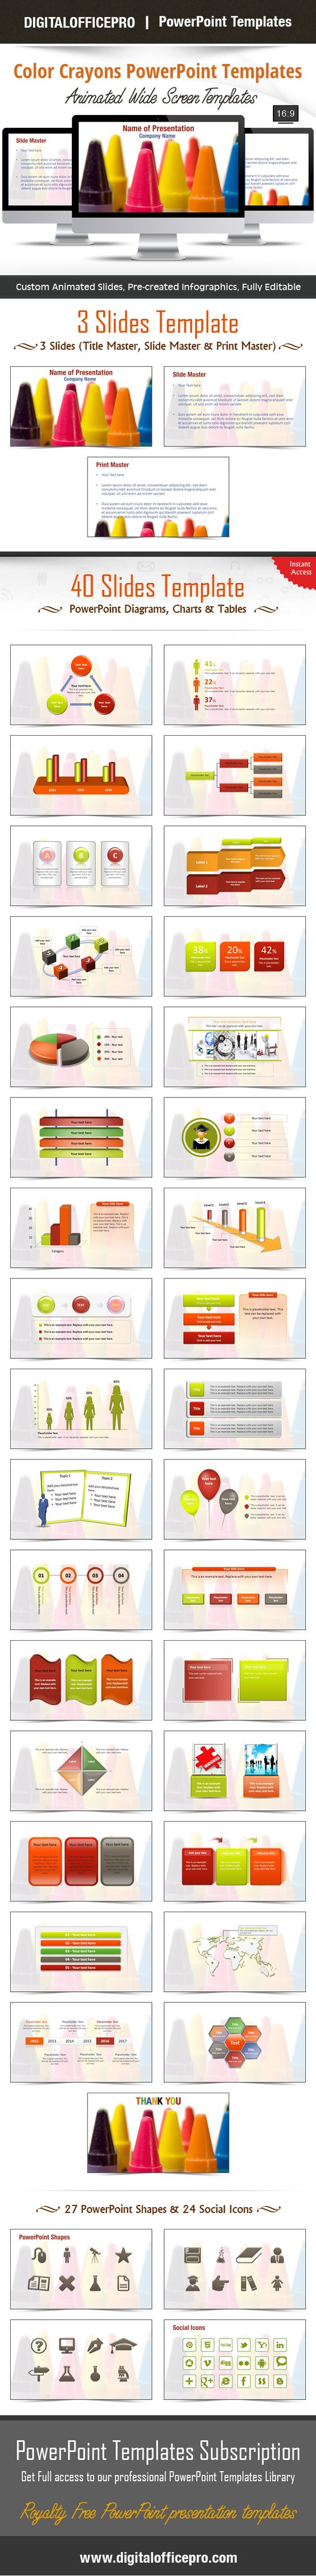 Color crayons powerpoint template backgrounds color crayons and color crayons powerpoint template backgrounds color crayons and template toneelgroepblik Choice Image